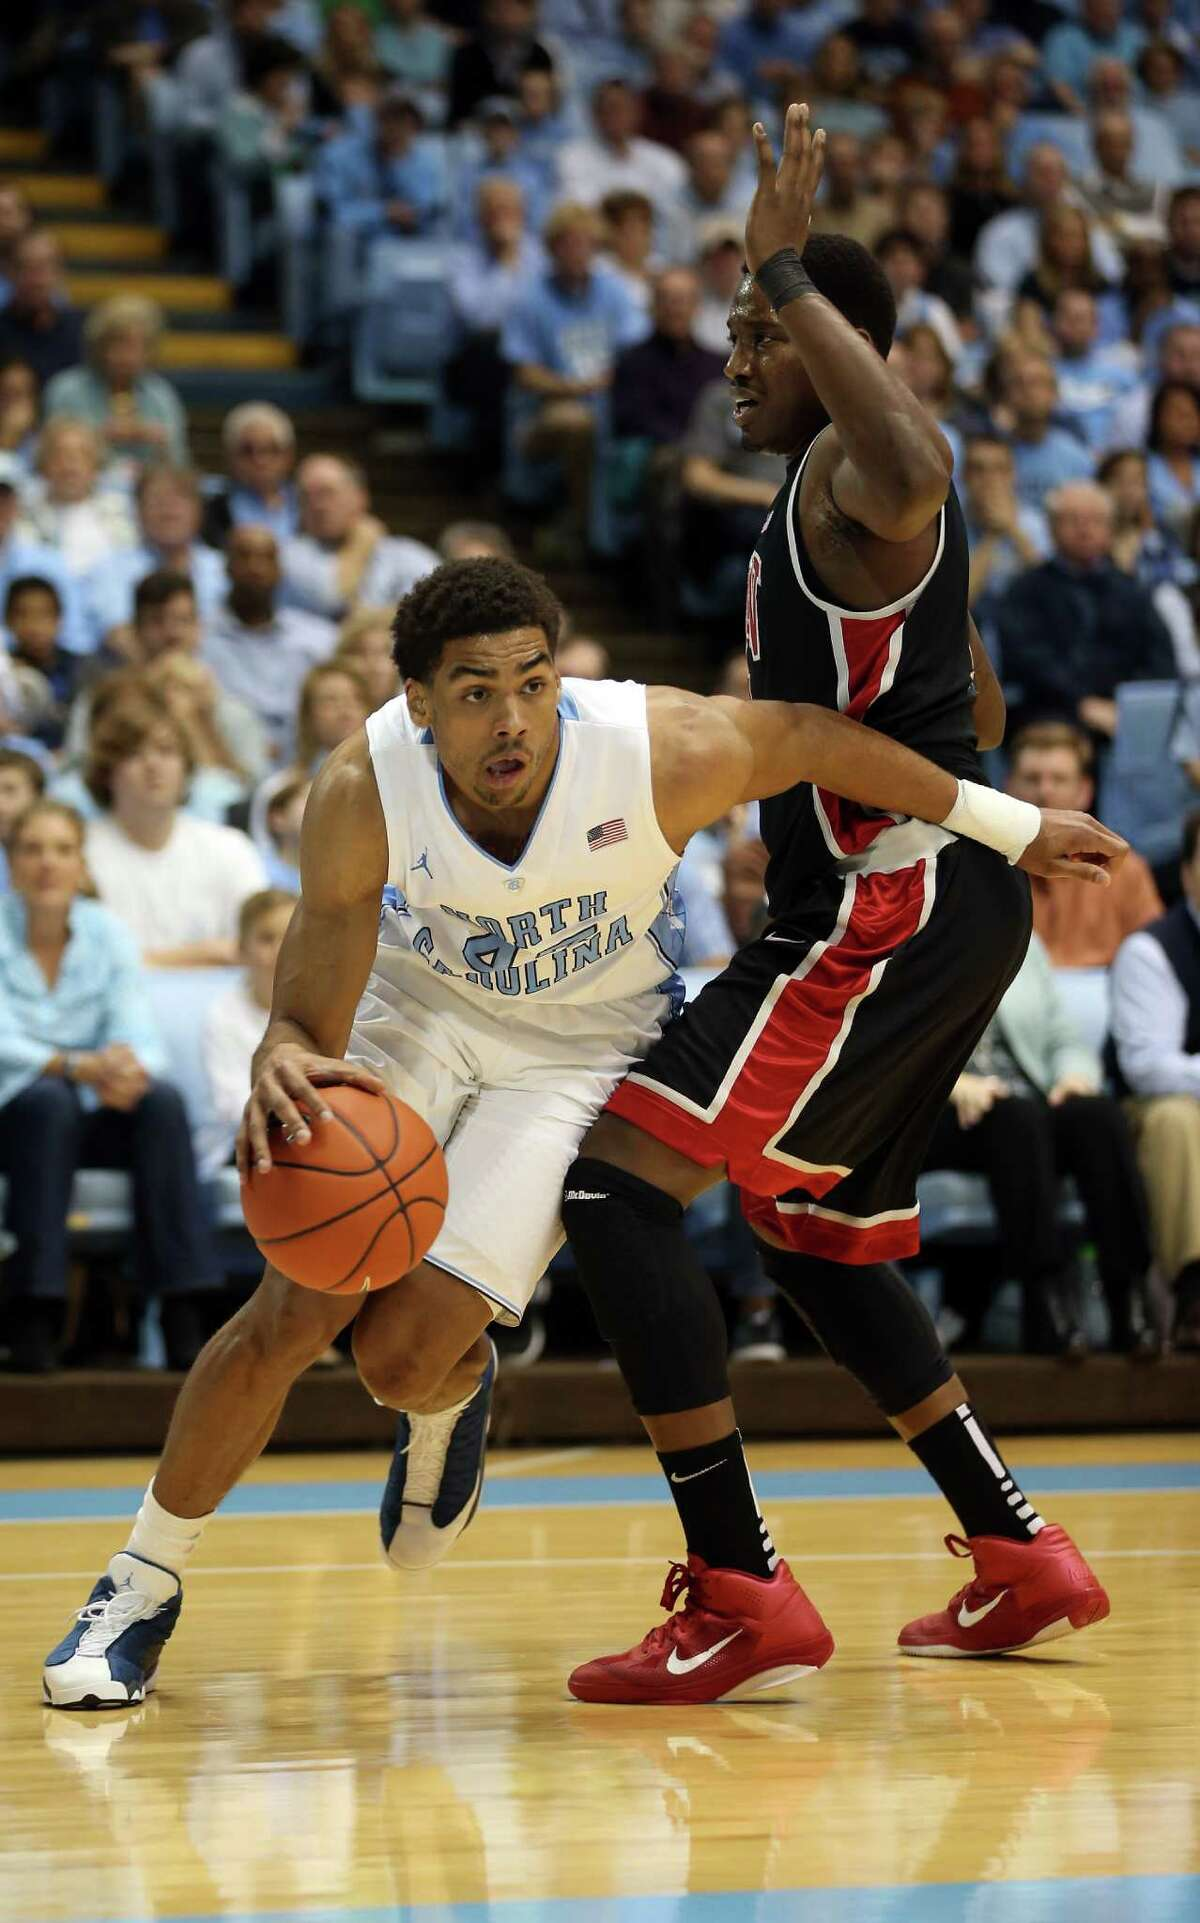 CHAPEL HILL, NC - DECEMBER 29: James Michael McAdoo #43 of the North Carolina Tar Heels drives around Quintrell Thomas #1 of the UNLV Rebels during their game at Dean Smith Center on December 29, 2012 in Chapel Hill, North Carolina. (Photo by Streeter Lecka/Getty Images)